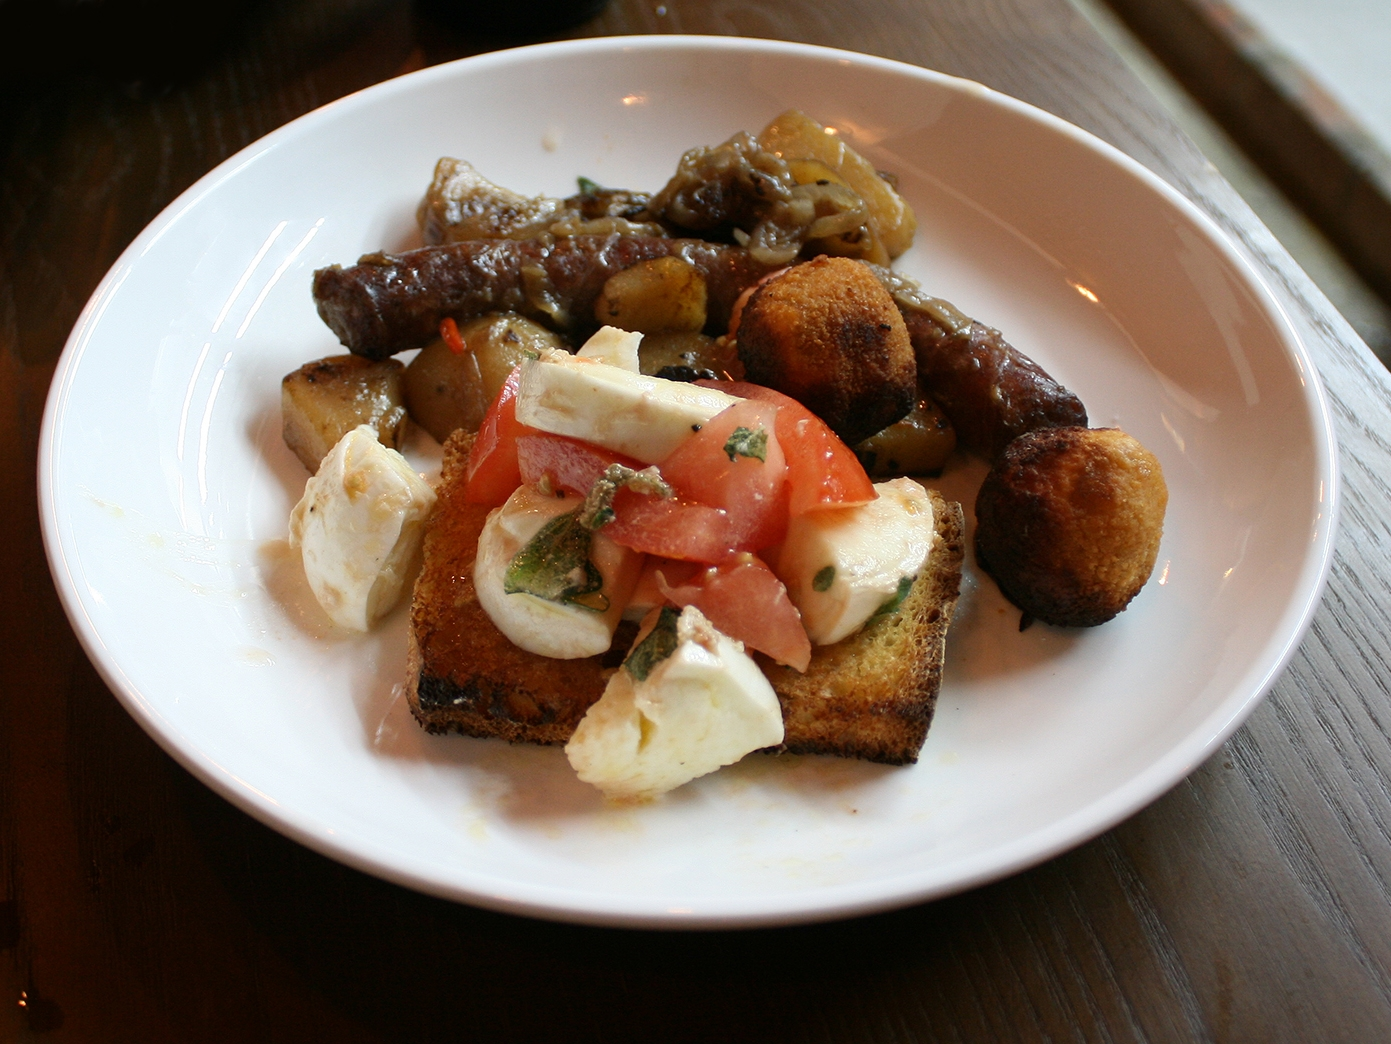 Italian sausage with buffalo mozzarella and tomatoes